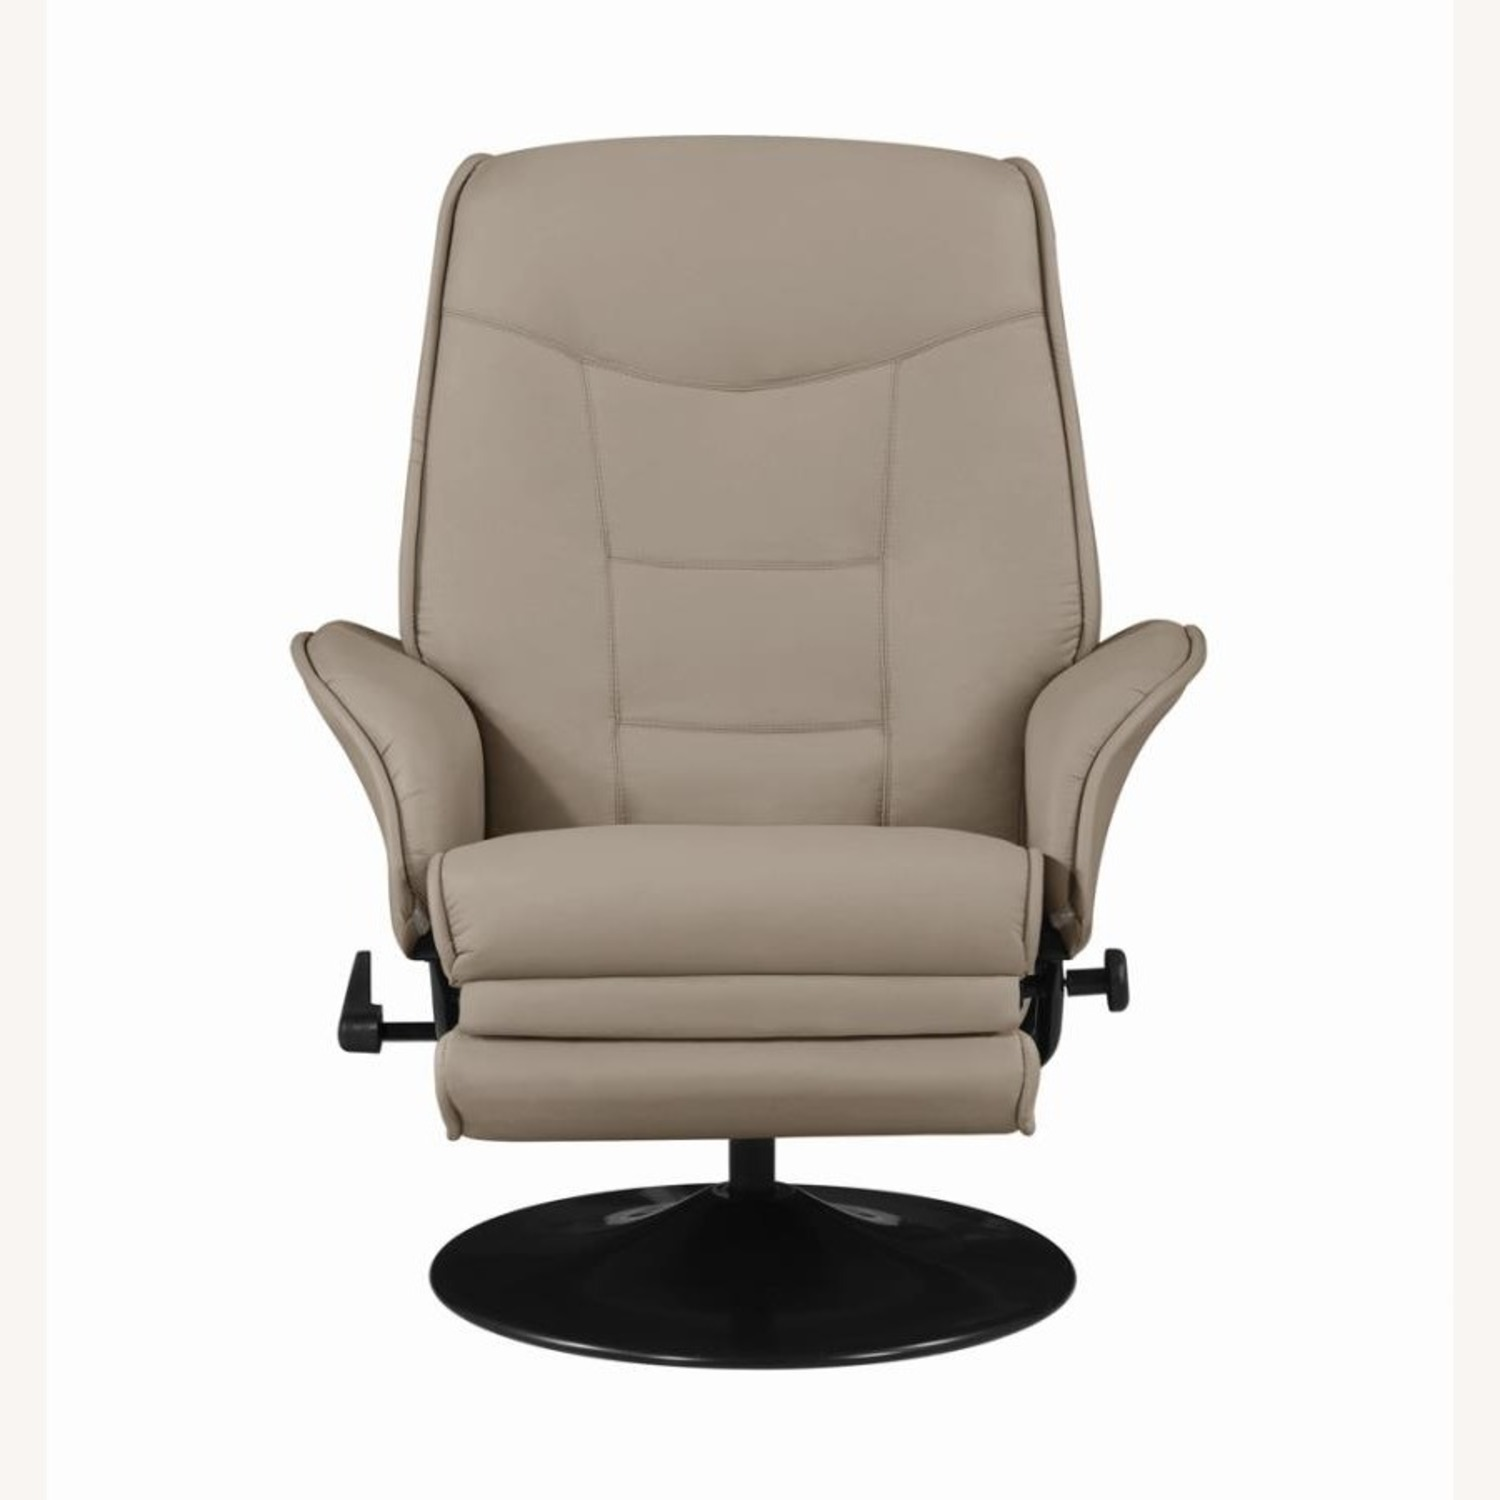 Swivel Recliner In Classic Beige Leatherette - image-2